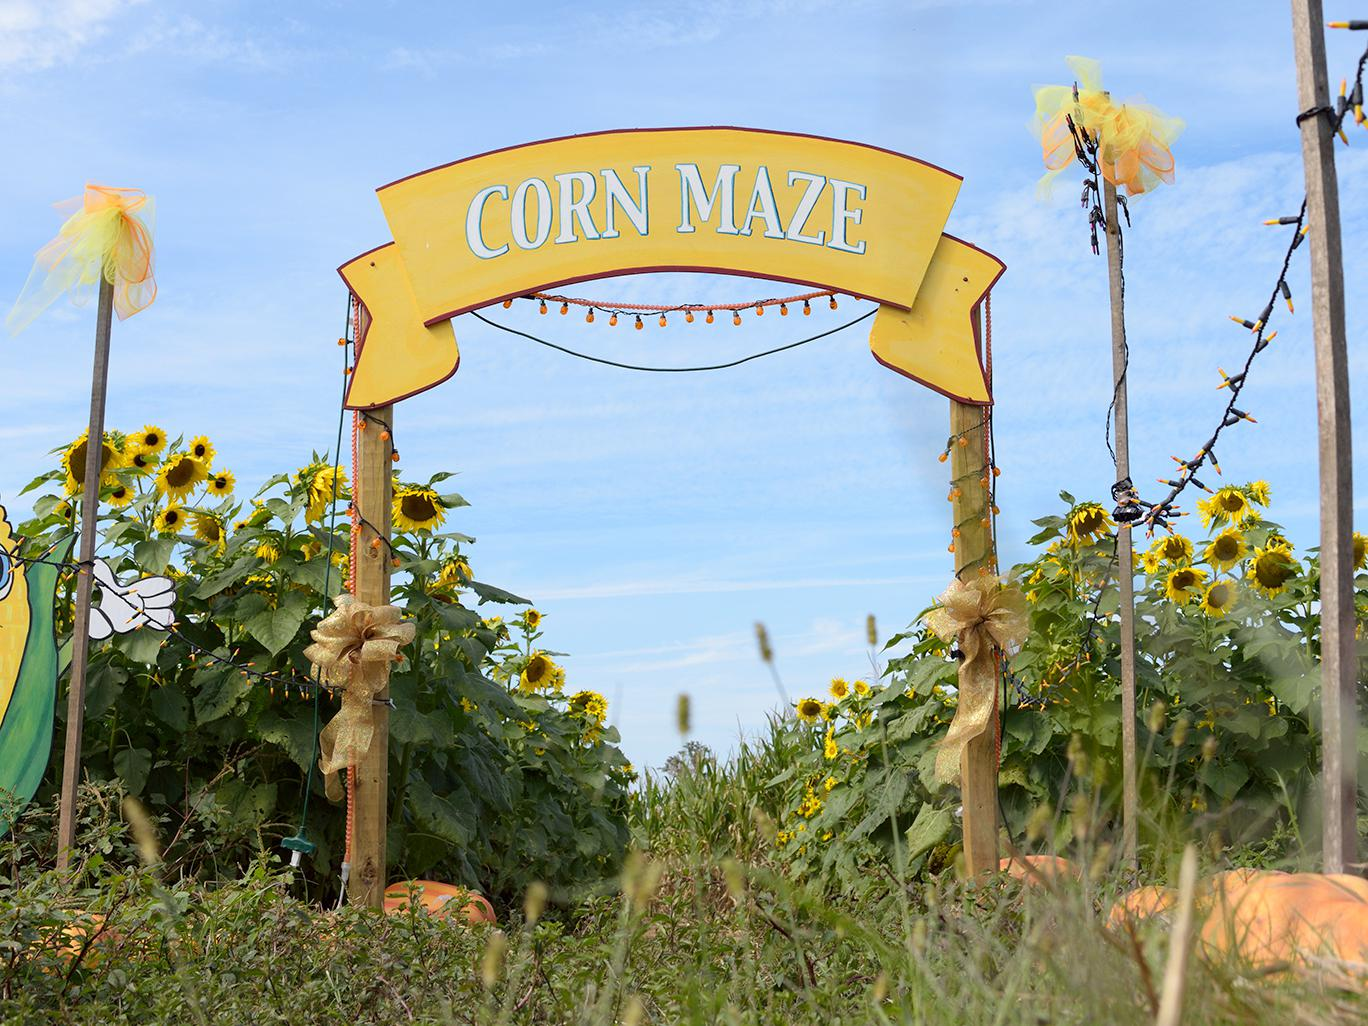 Agritourism offers opportunities for entertainment -- such as this corn maze shown at Mitchell Farms in Collins, Mississippi -- that also educate about agriculture and add to local revenue streams. (File photo by MSU Extension Service/Kevin Hudson)